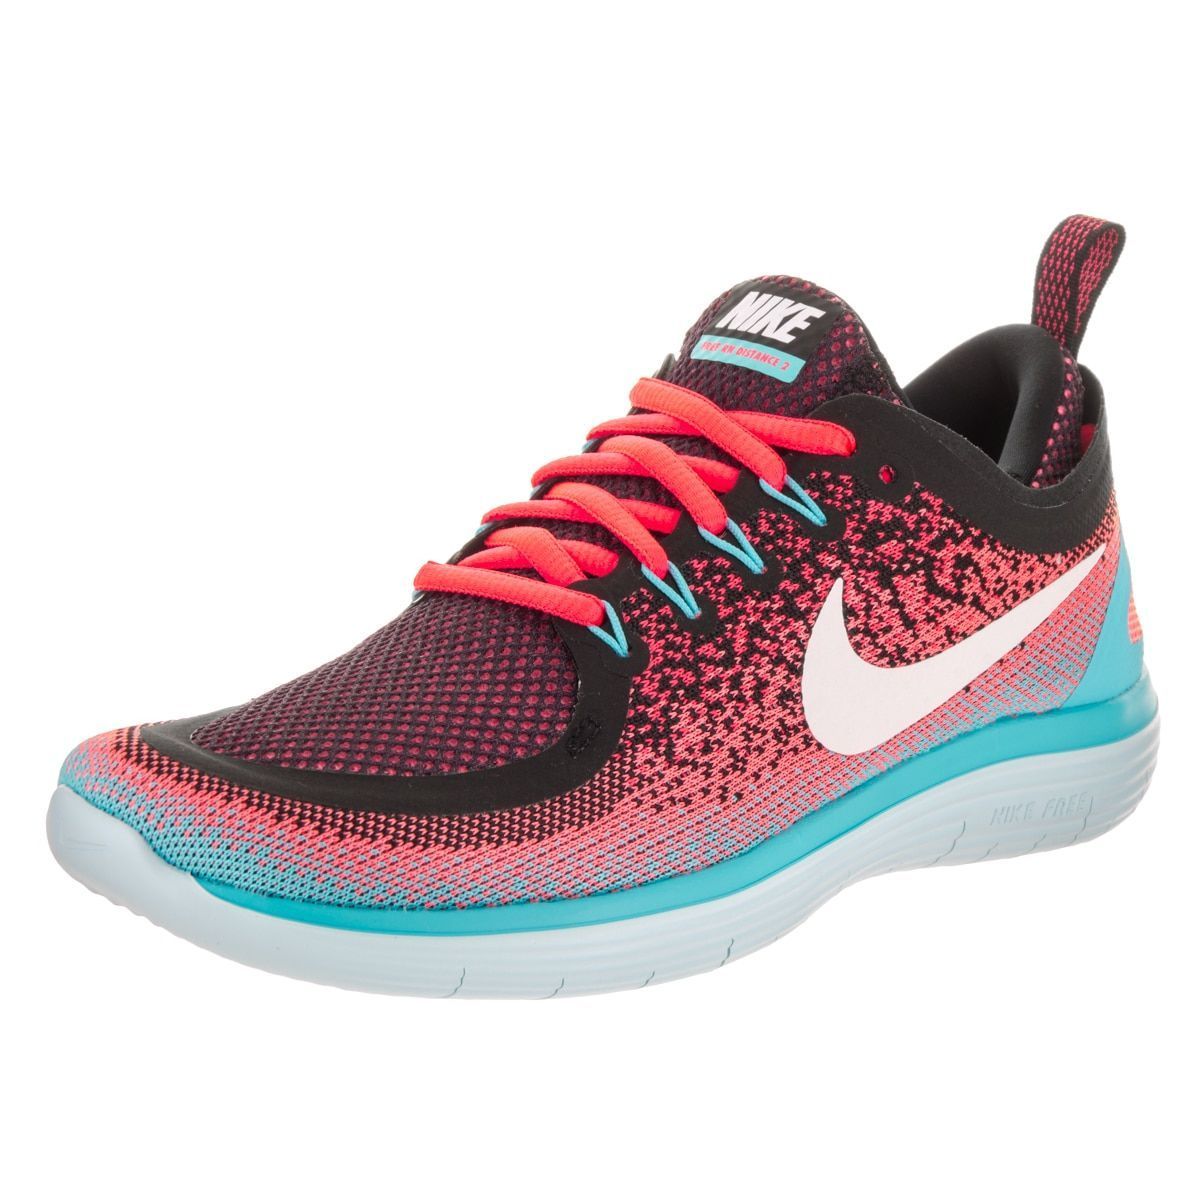 Aventurarse Llamarada Terminología  Nike Women's Free RN Distance 2 Running Shoes  http://feedproxy.google.com/fashionshoes11 | Stylish running shoes, Long  distance running shoes, Nike women